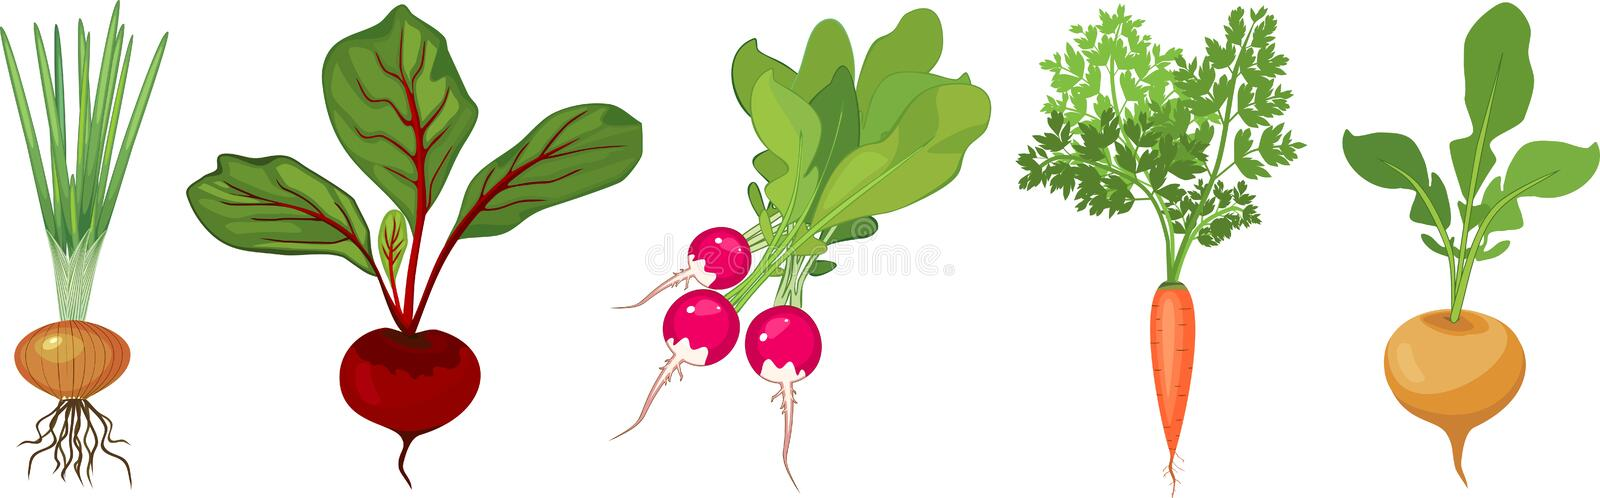 Set of different tuberous vegetables with tops on white background. Set of different tuberous vegetables with tops isolated on white background royalty free illustration